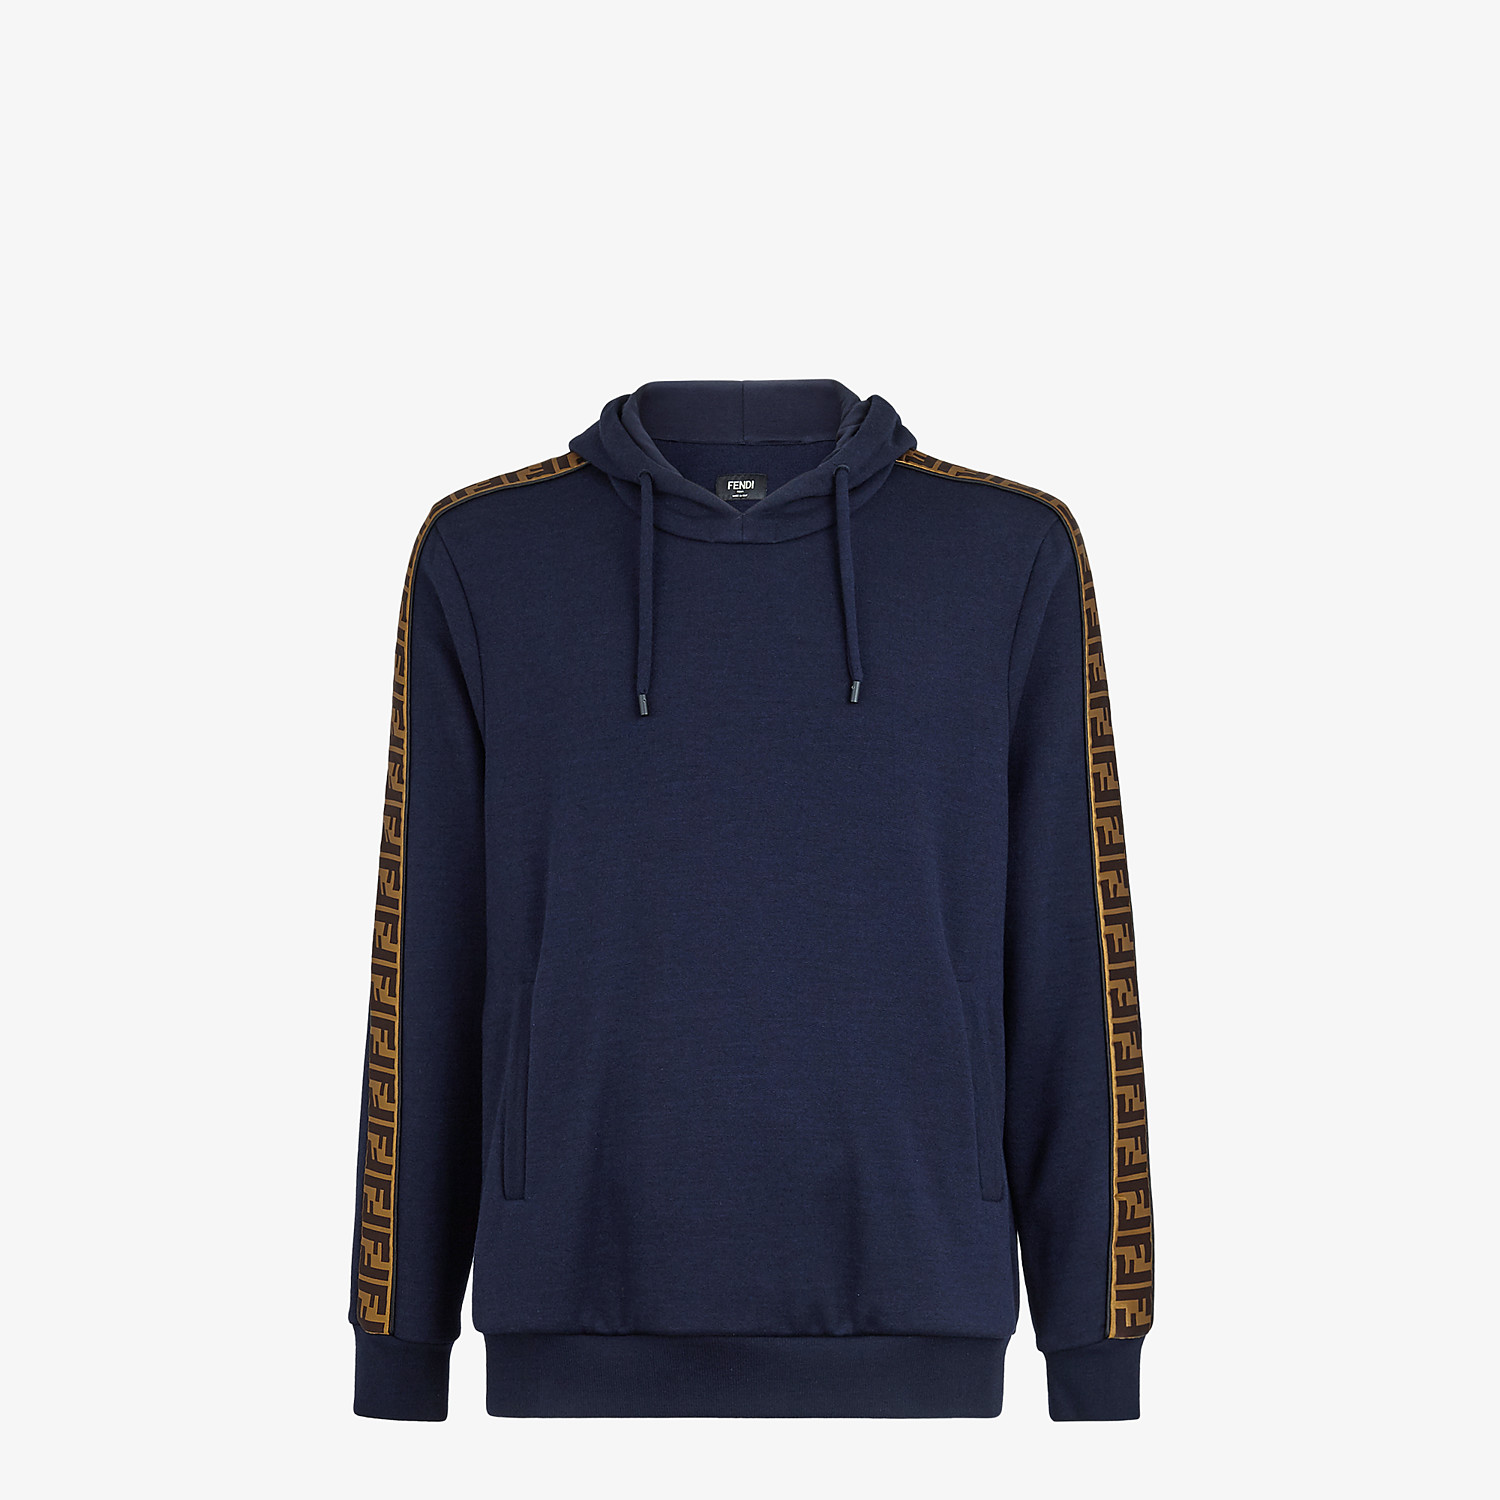 FENDI SWEATSHIRT - Blue wool and cotton sweatshirt - view 1 detail